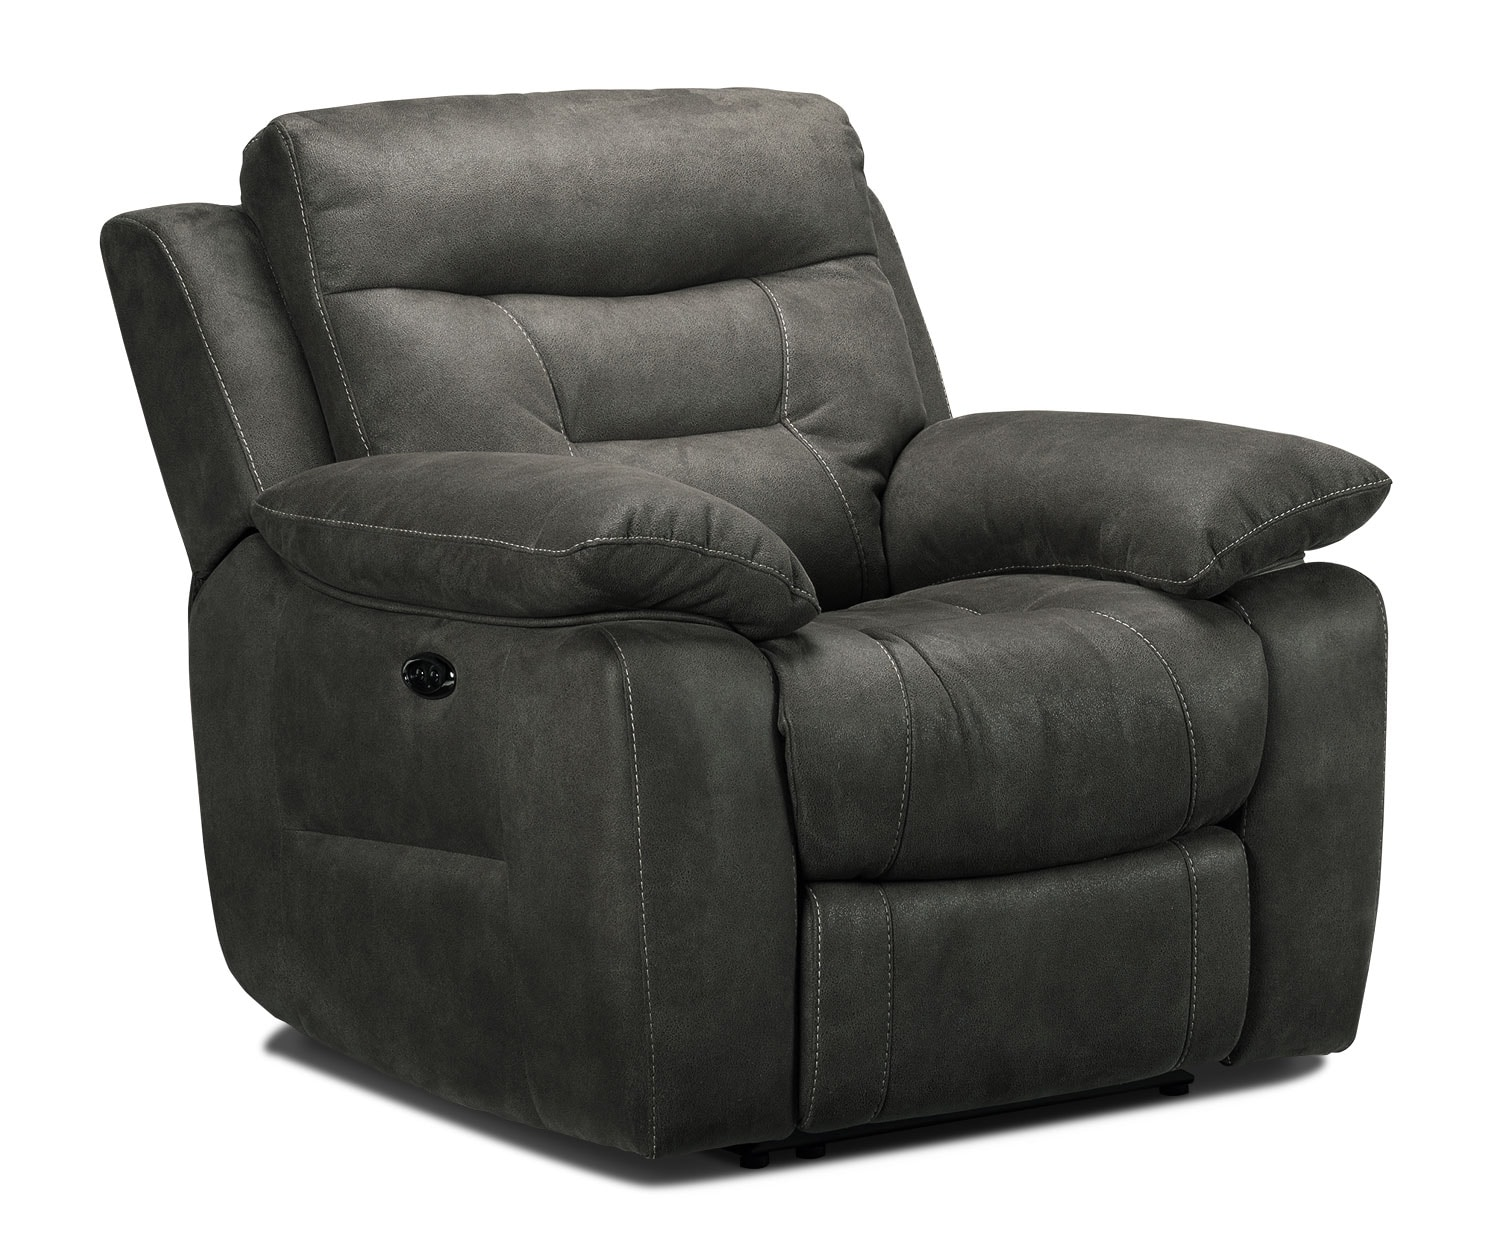 Collins Power Recliner - Charcoal Grey